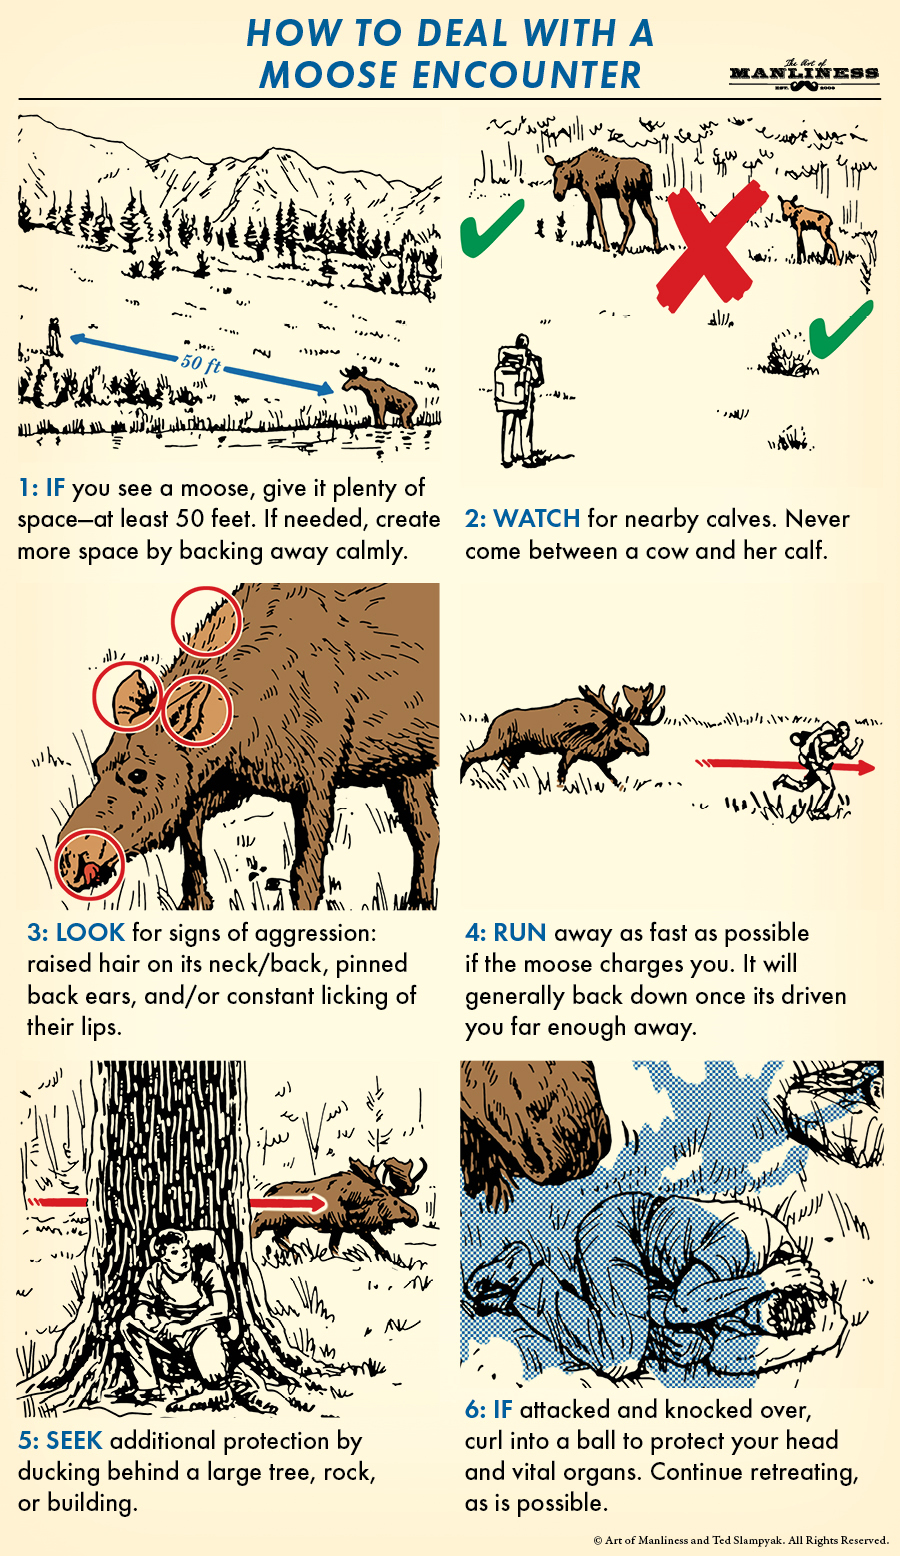 Poster by Art of Manliness regarding an encouter with a moose.